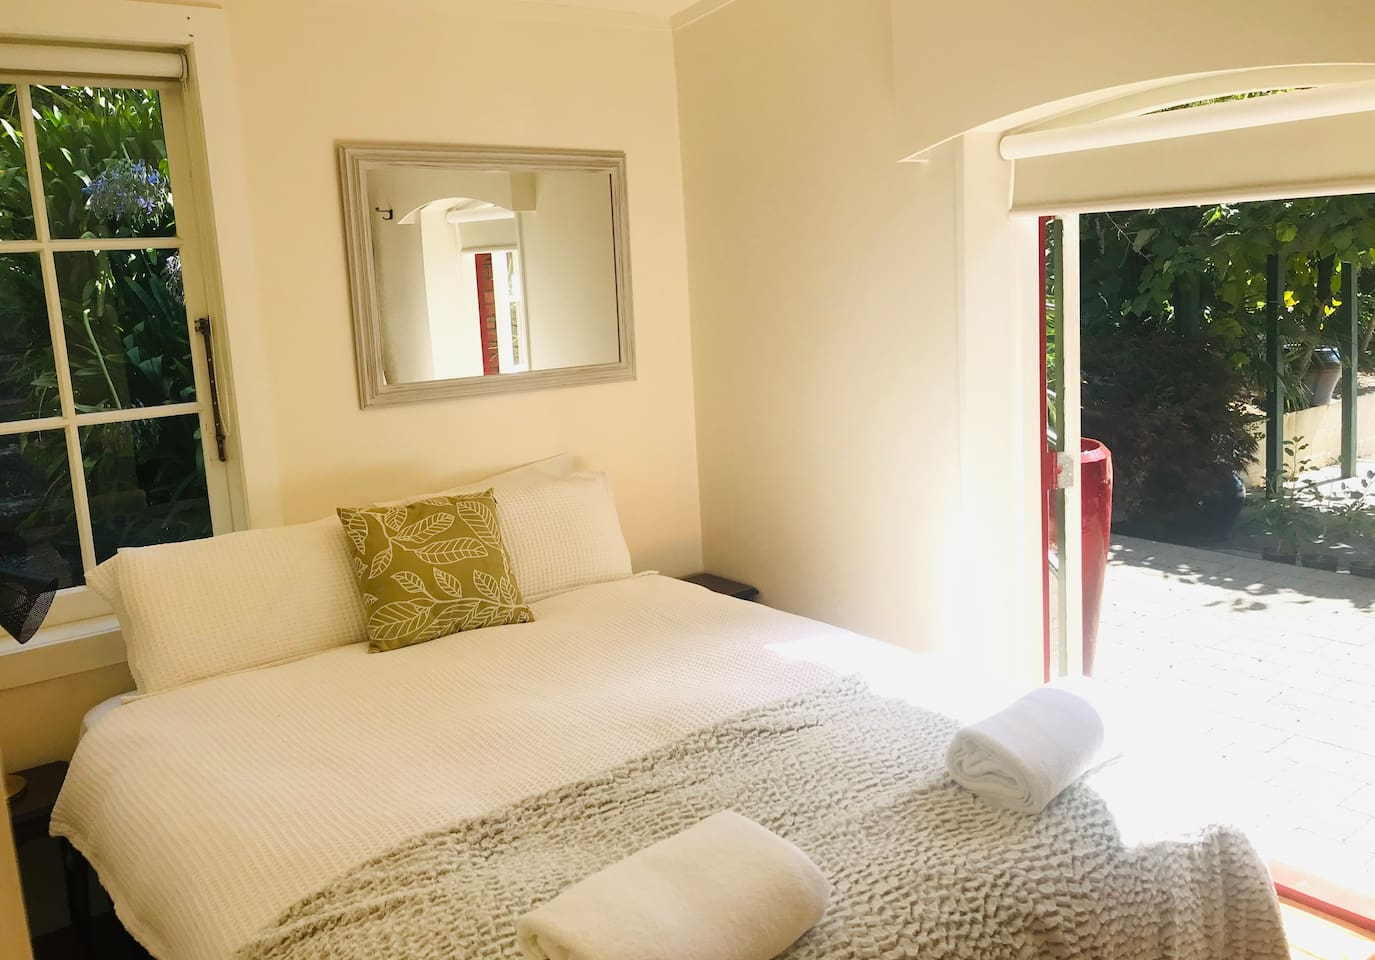 'Little Italy' queen bedroom with Italian doors out onto patio. Wake up to birdsong in a very serene and peaceful setting.